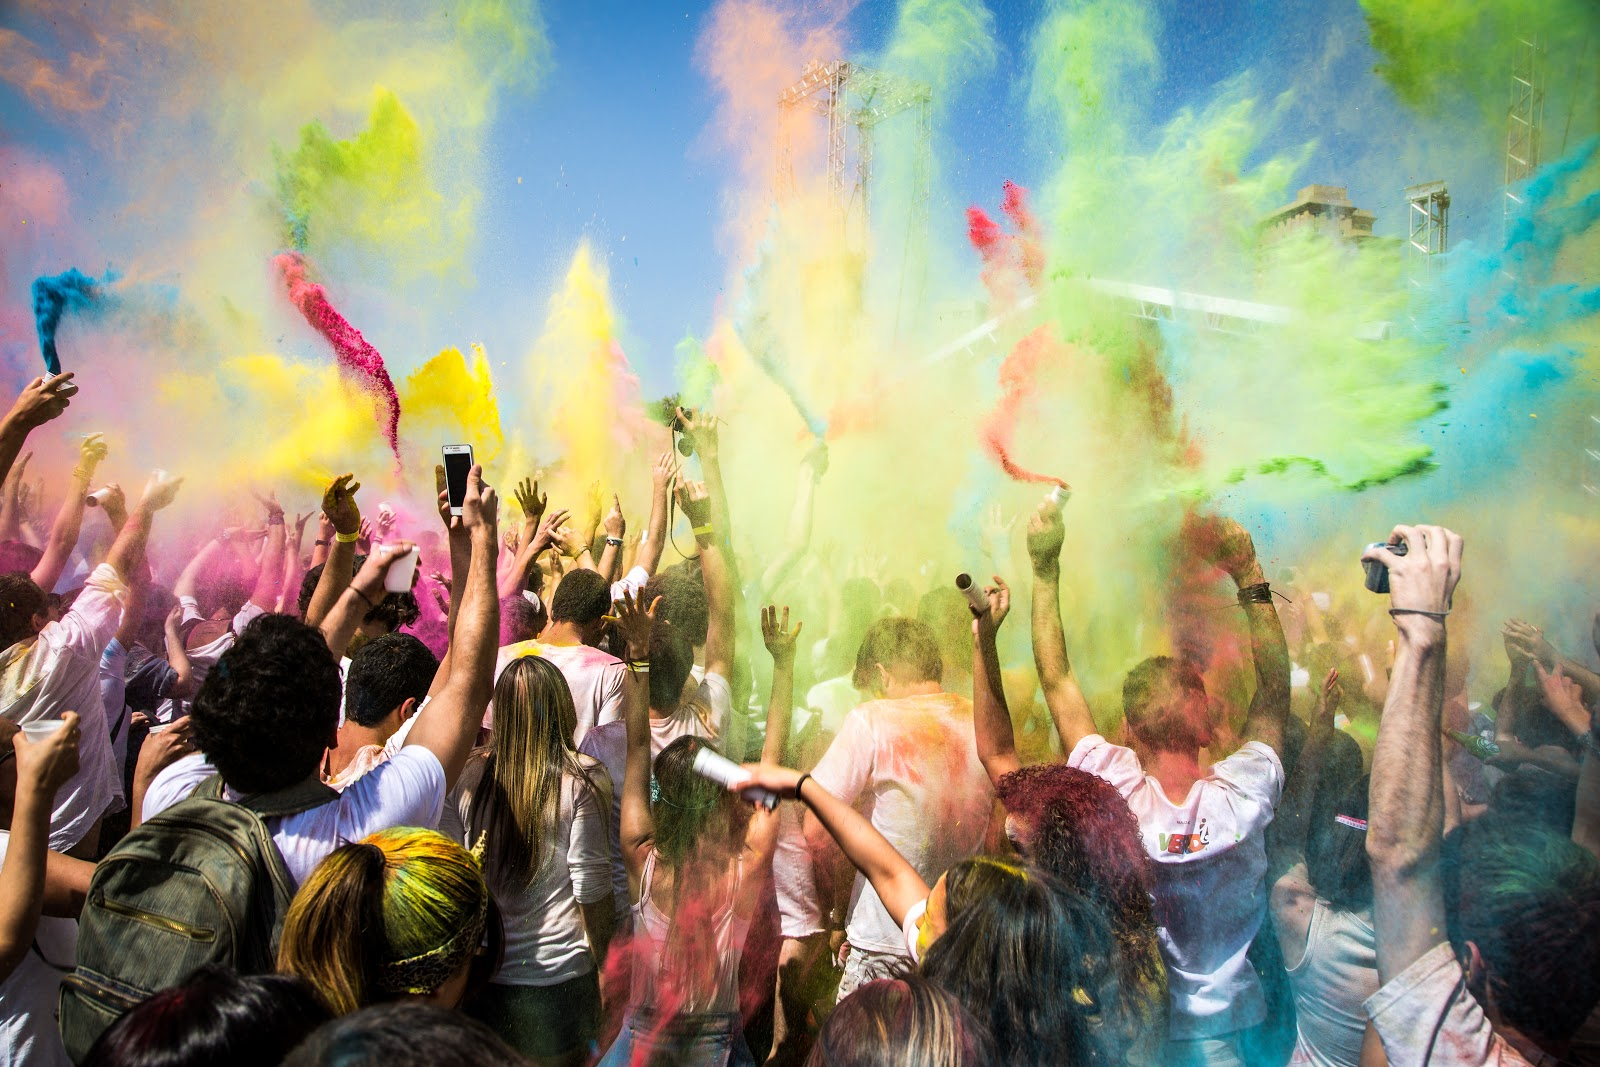 https://upload.wikimedia.org/wikipedia/commons/6/64/Sem_t%C3%ADtulo_holi_festival_colours_2013.jpg